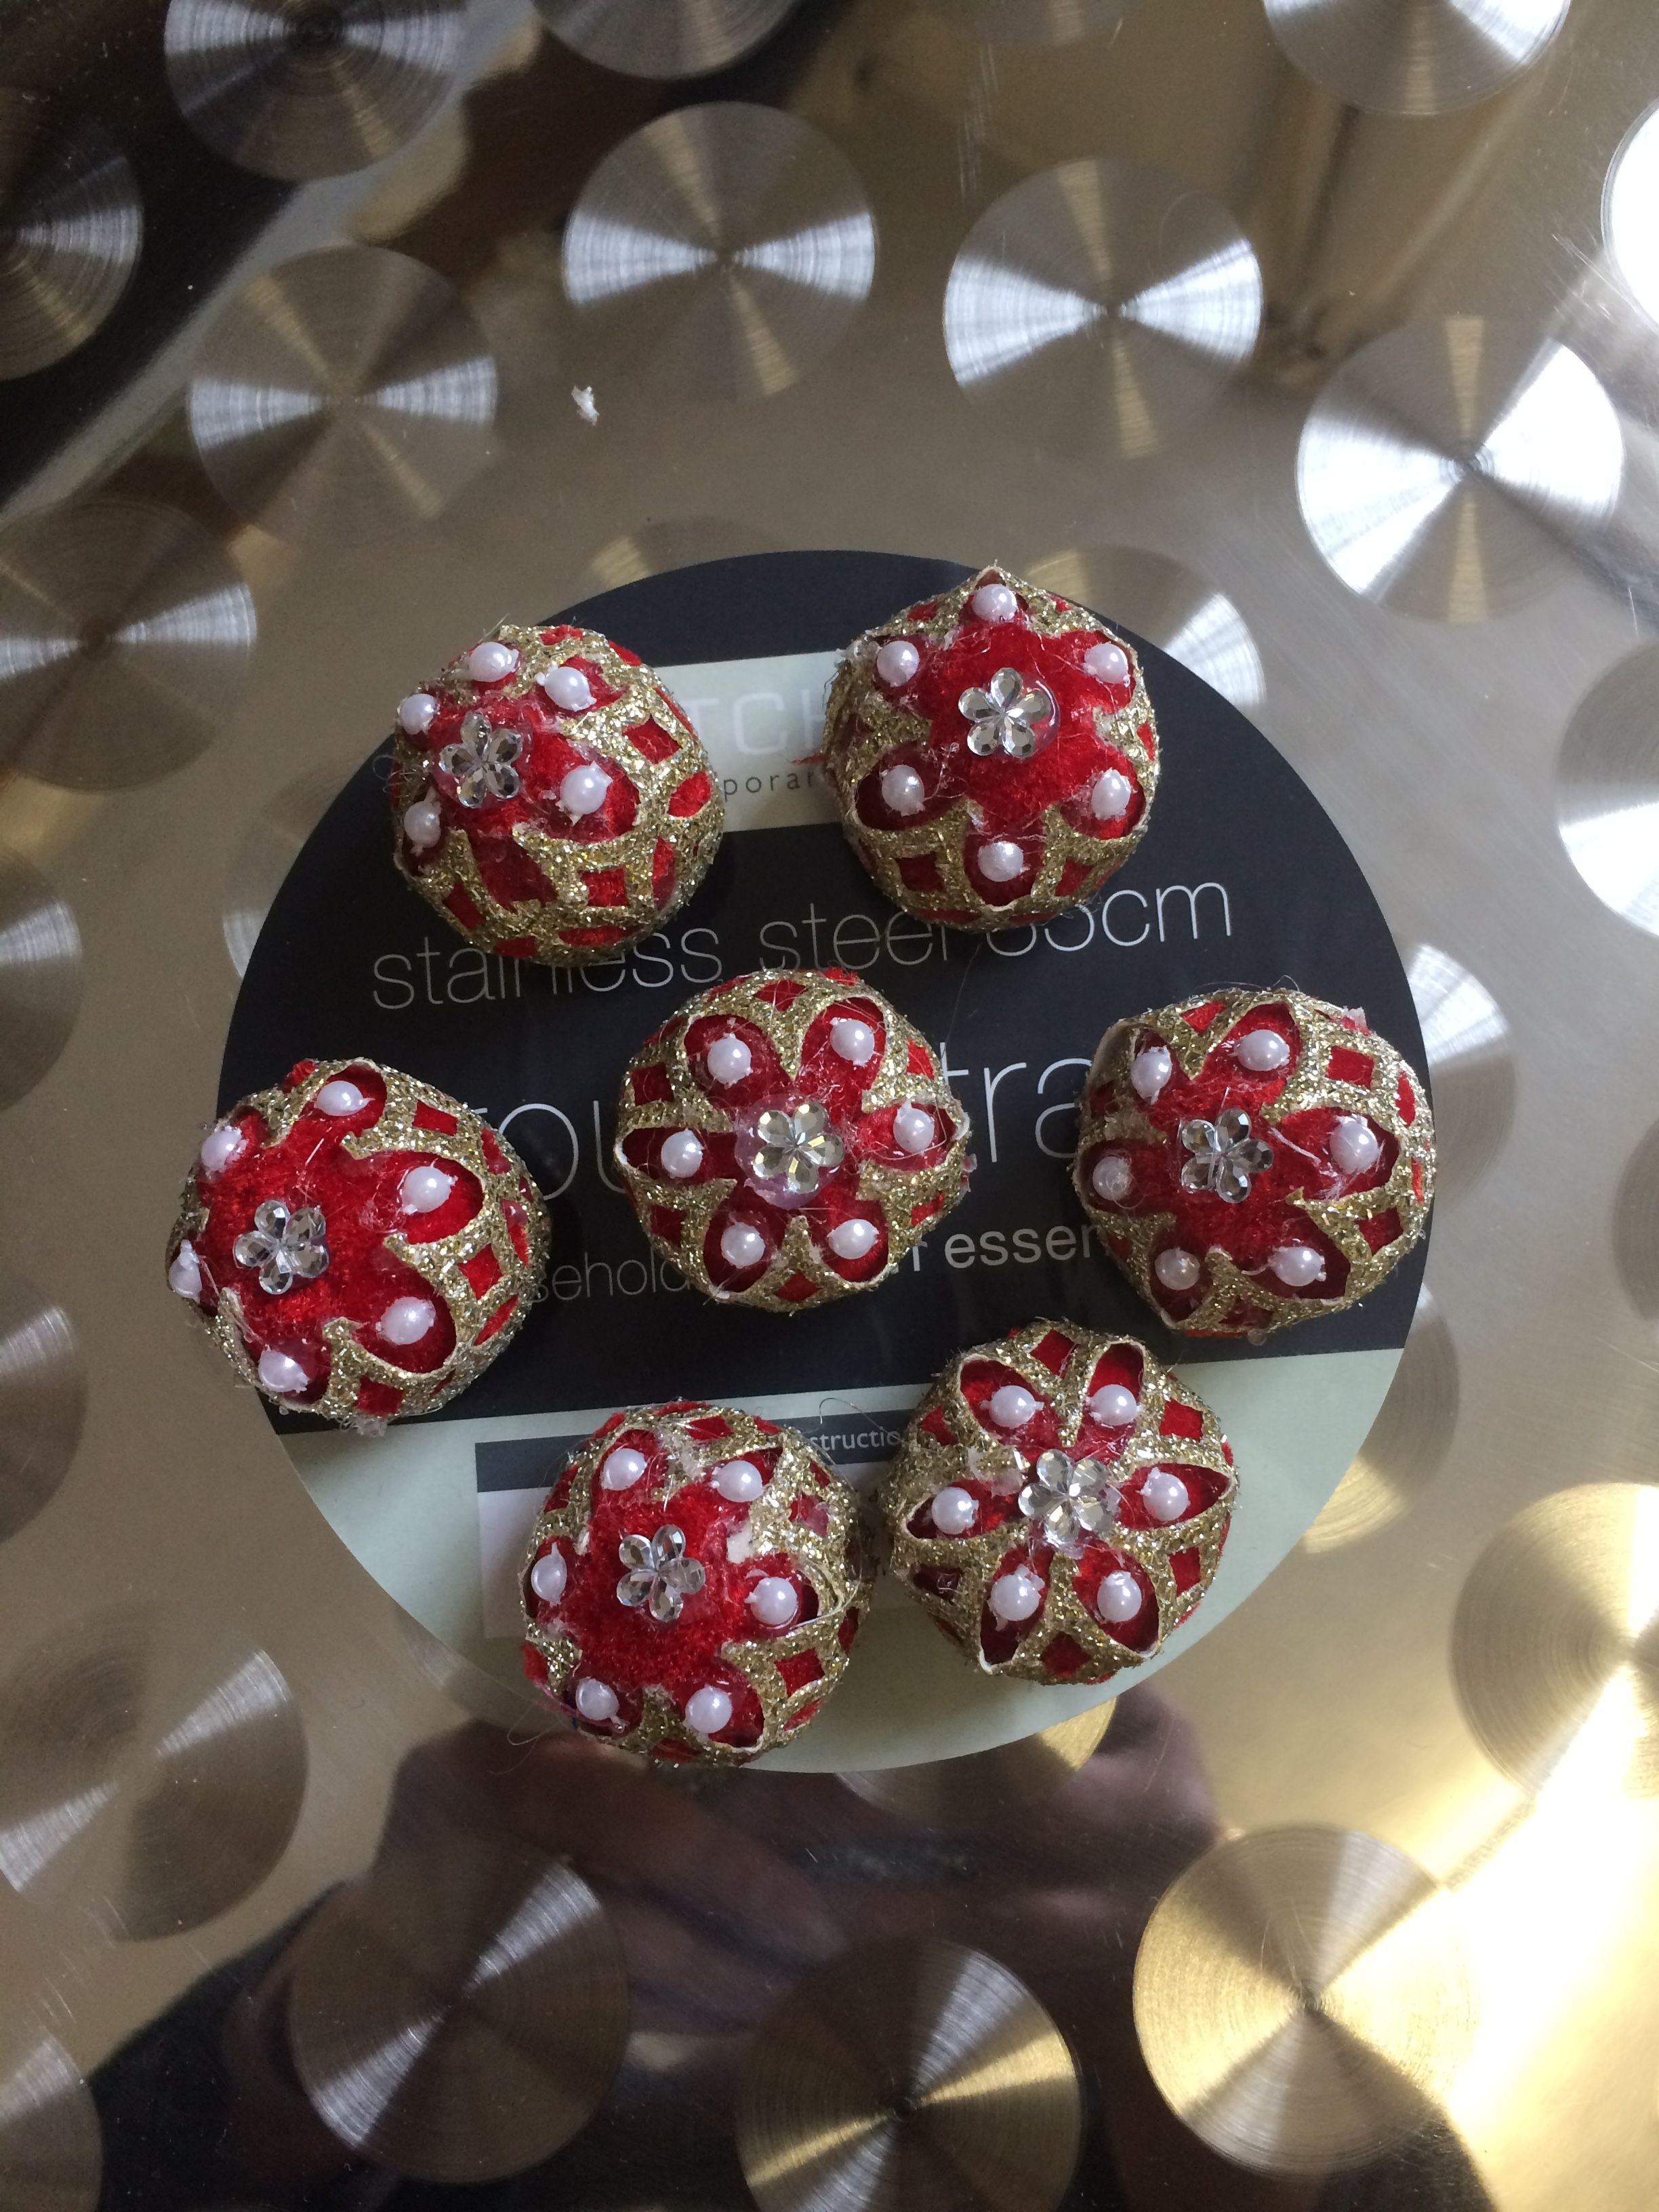 49+ Cakes and craft indore contact number info